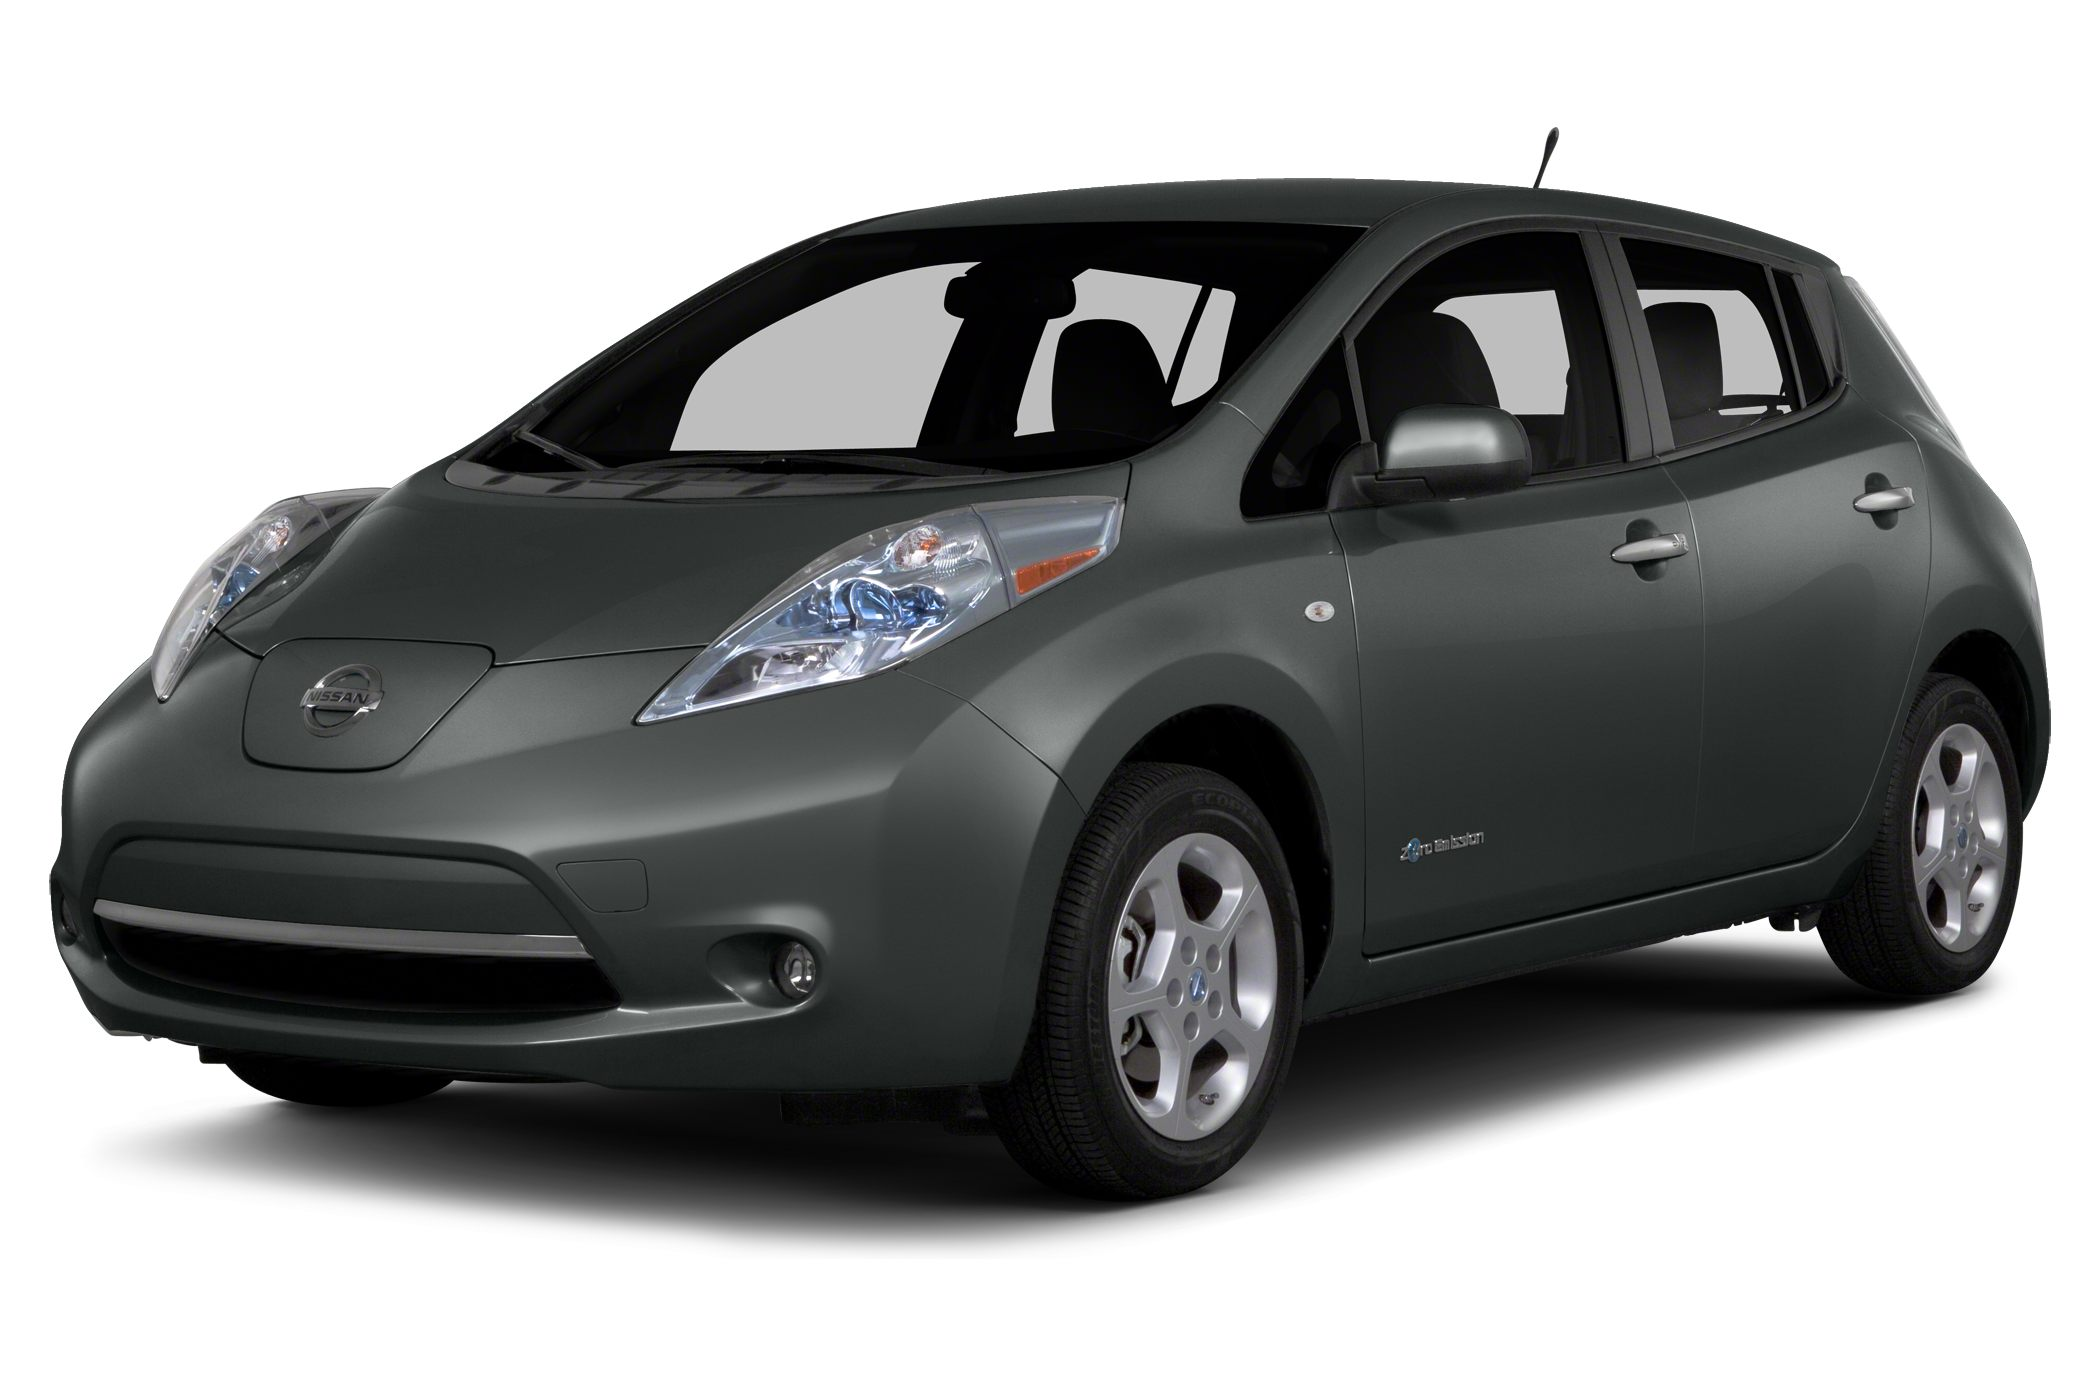 2015 Nissan Leaf S Hatchback for sale in San Jose for $32,230 with 8 miles.